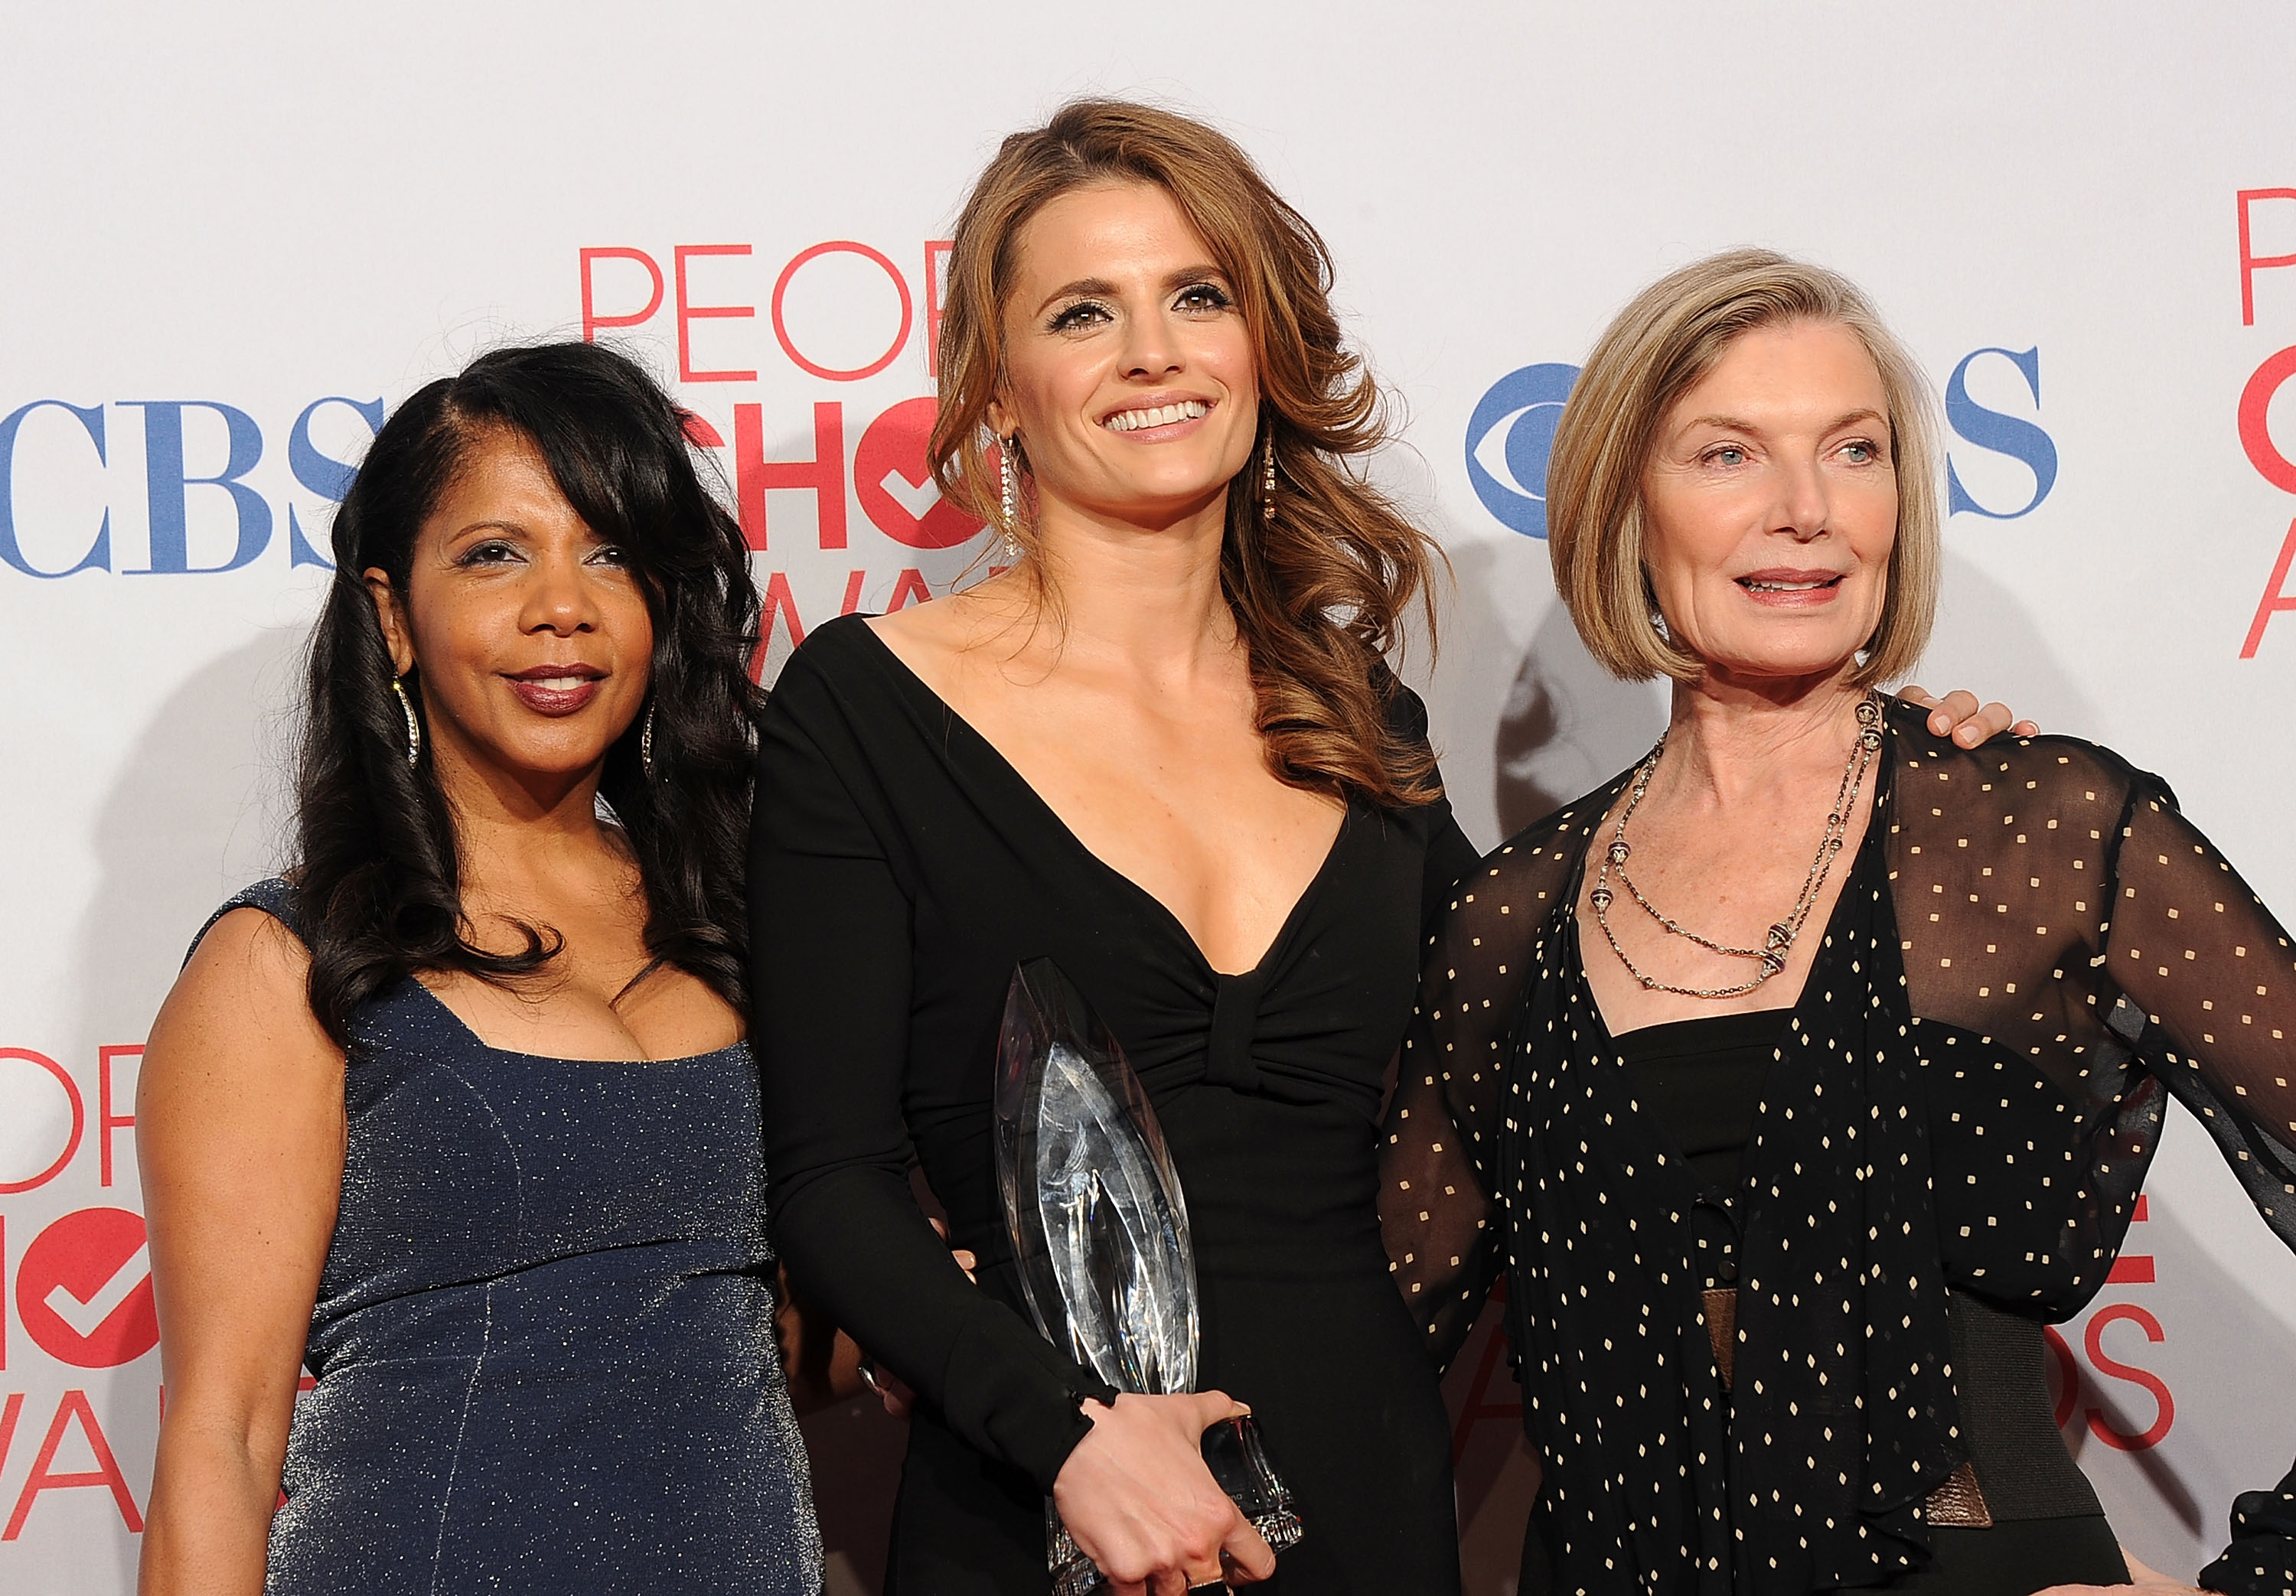 Penny, Stana, and Susan